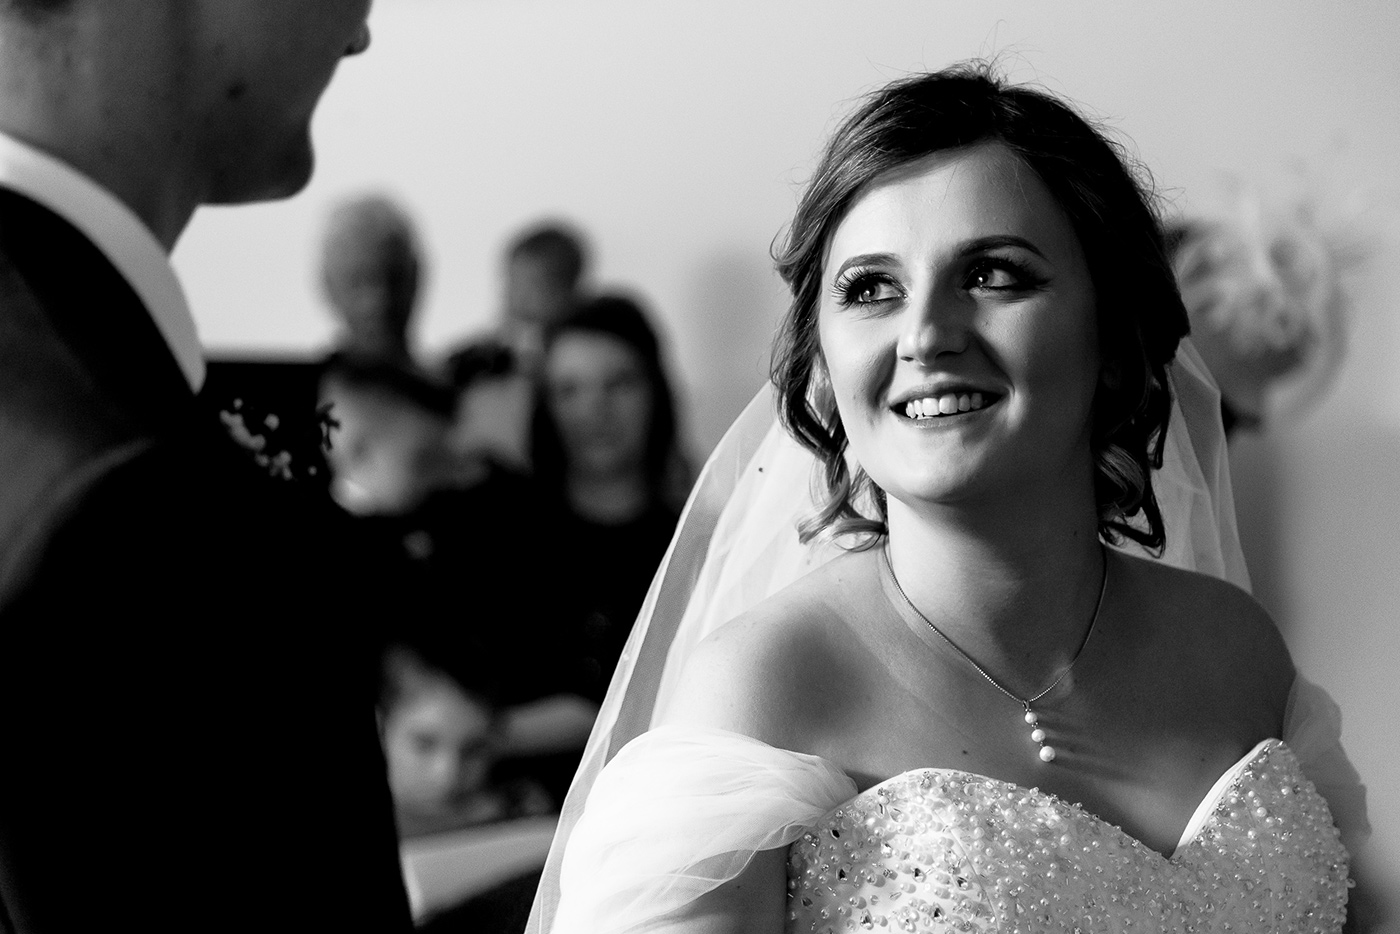 Lily smiles at Carl during the wedding ceremony at Chesfield Downs Golf Club.